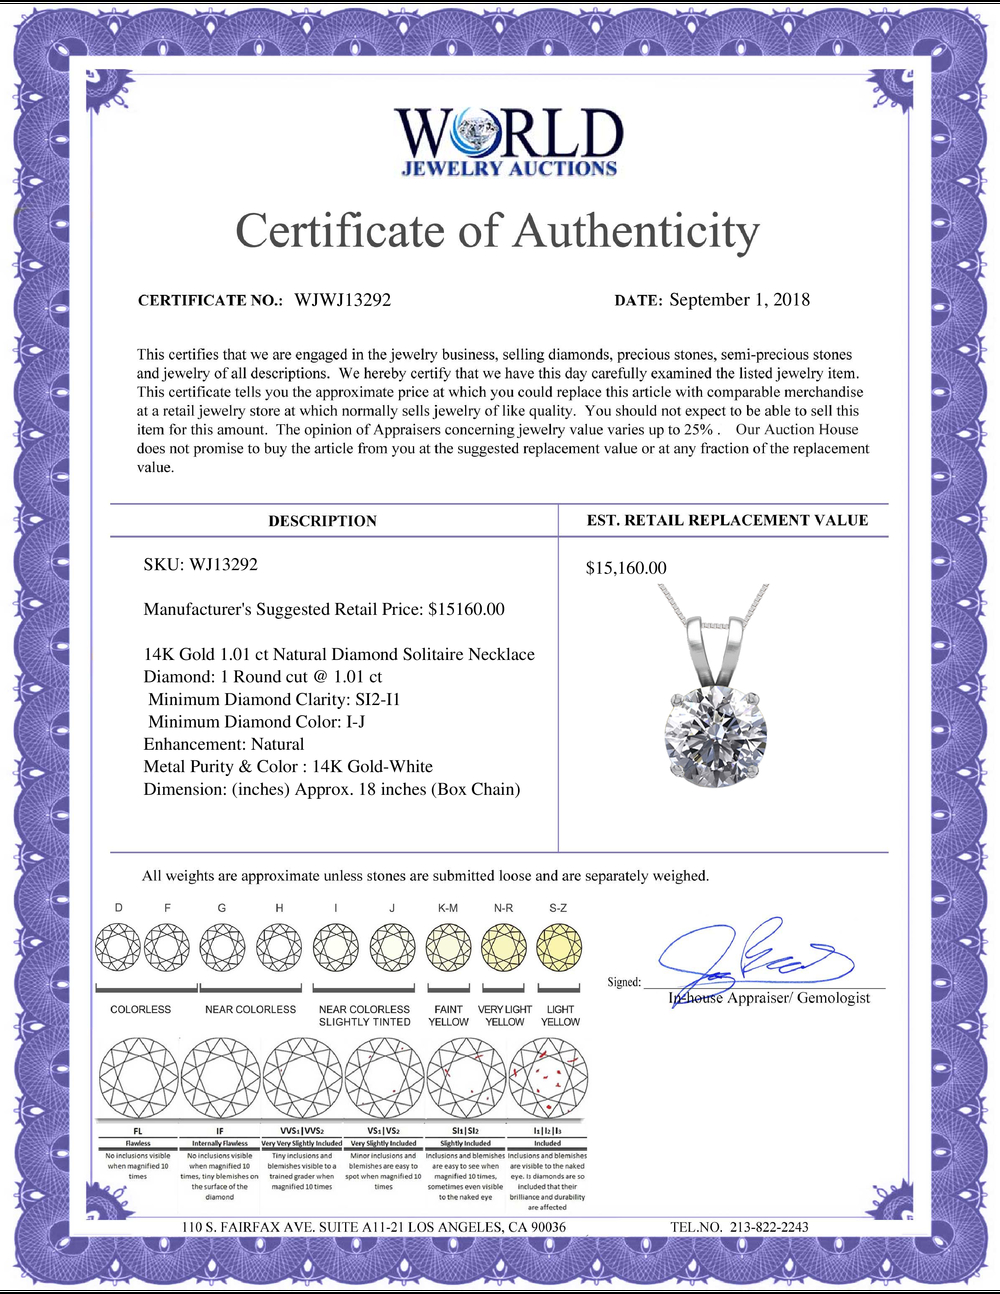 Lot 4007: 14K White Gold 1.01 ct Natural Diamond Solitaire Necklace - REF-286K8Y-WJ13292